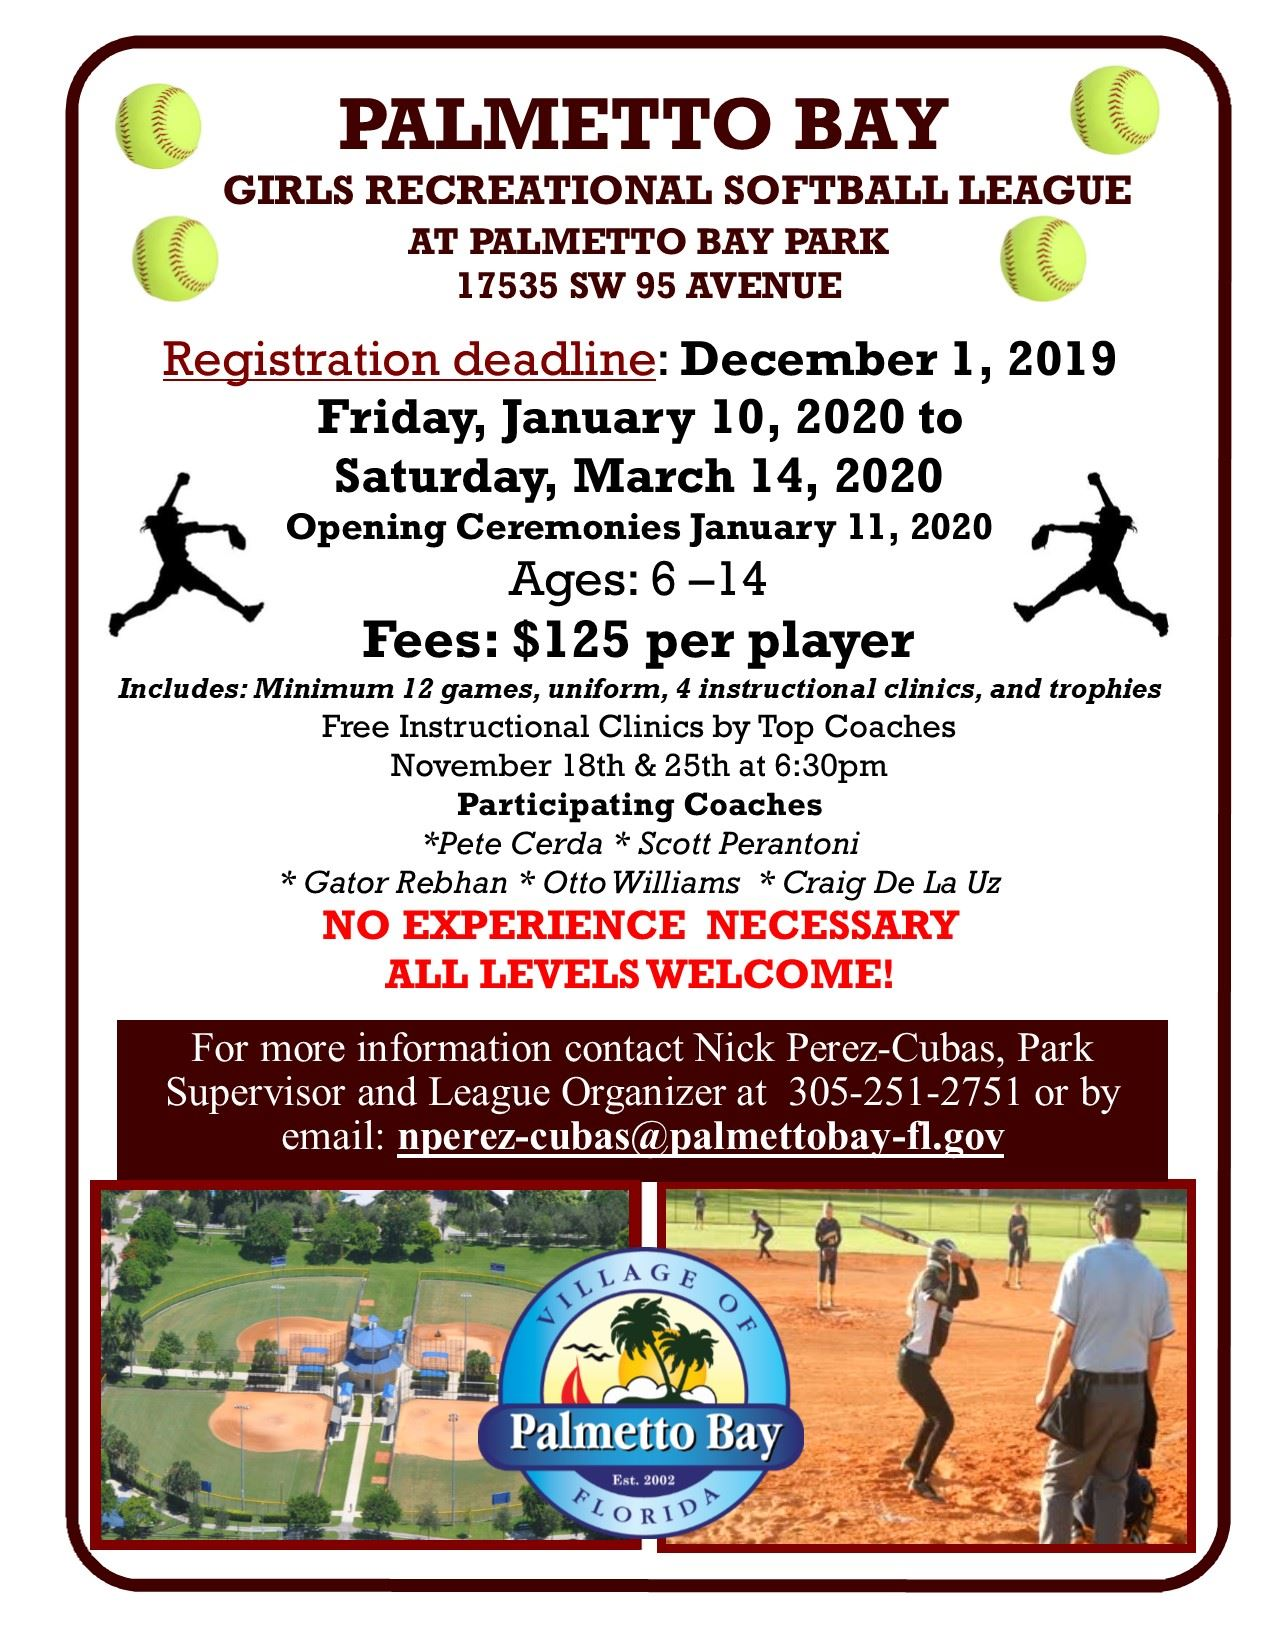 Girls Reccreation softball league flyer updated 11-6-19